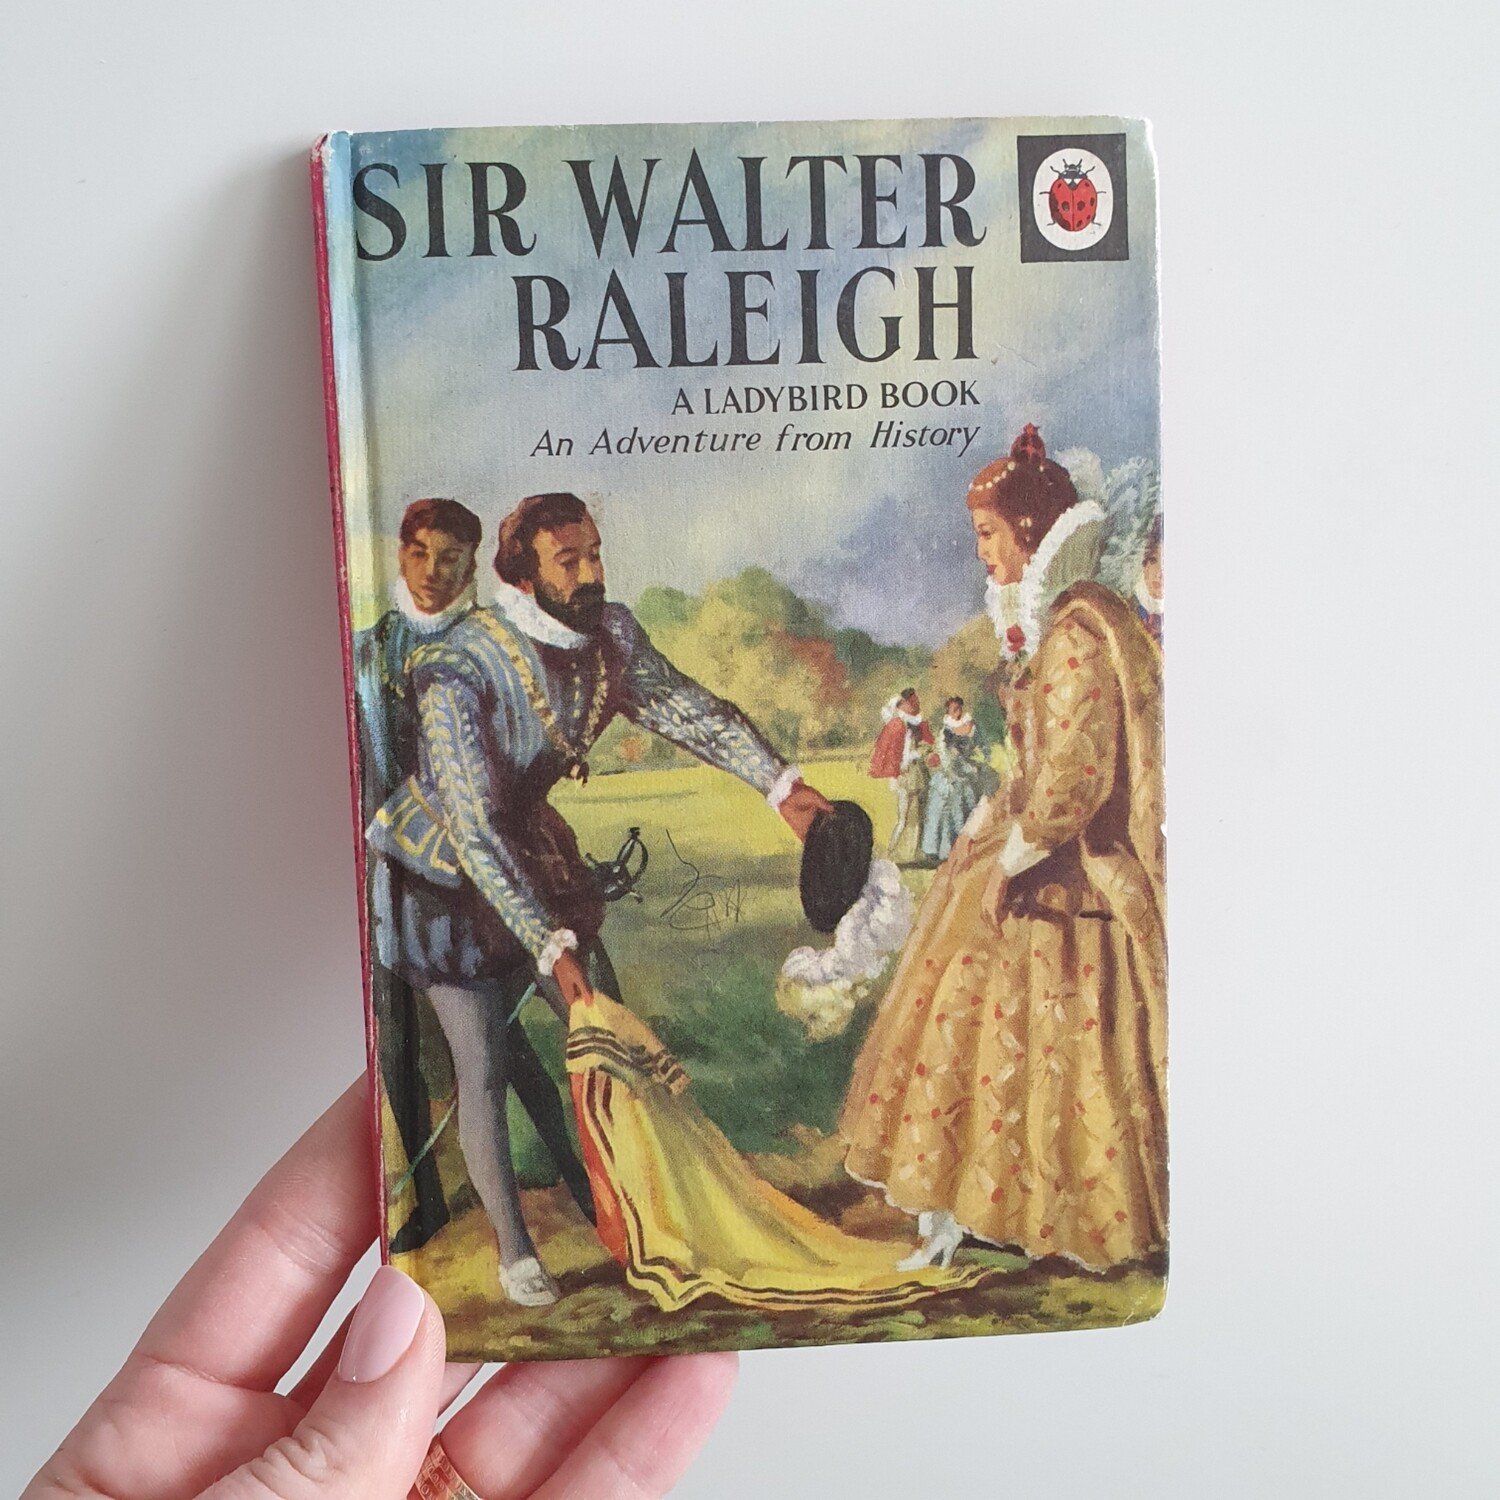 Sir Walter Raleigh Notebook - Queen Elizabeth I